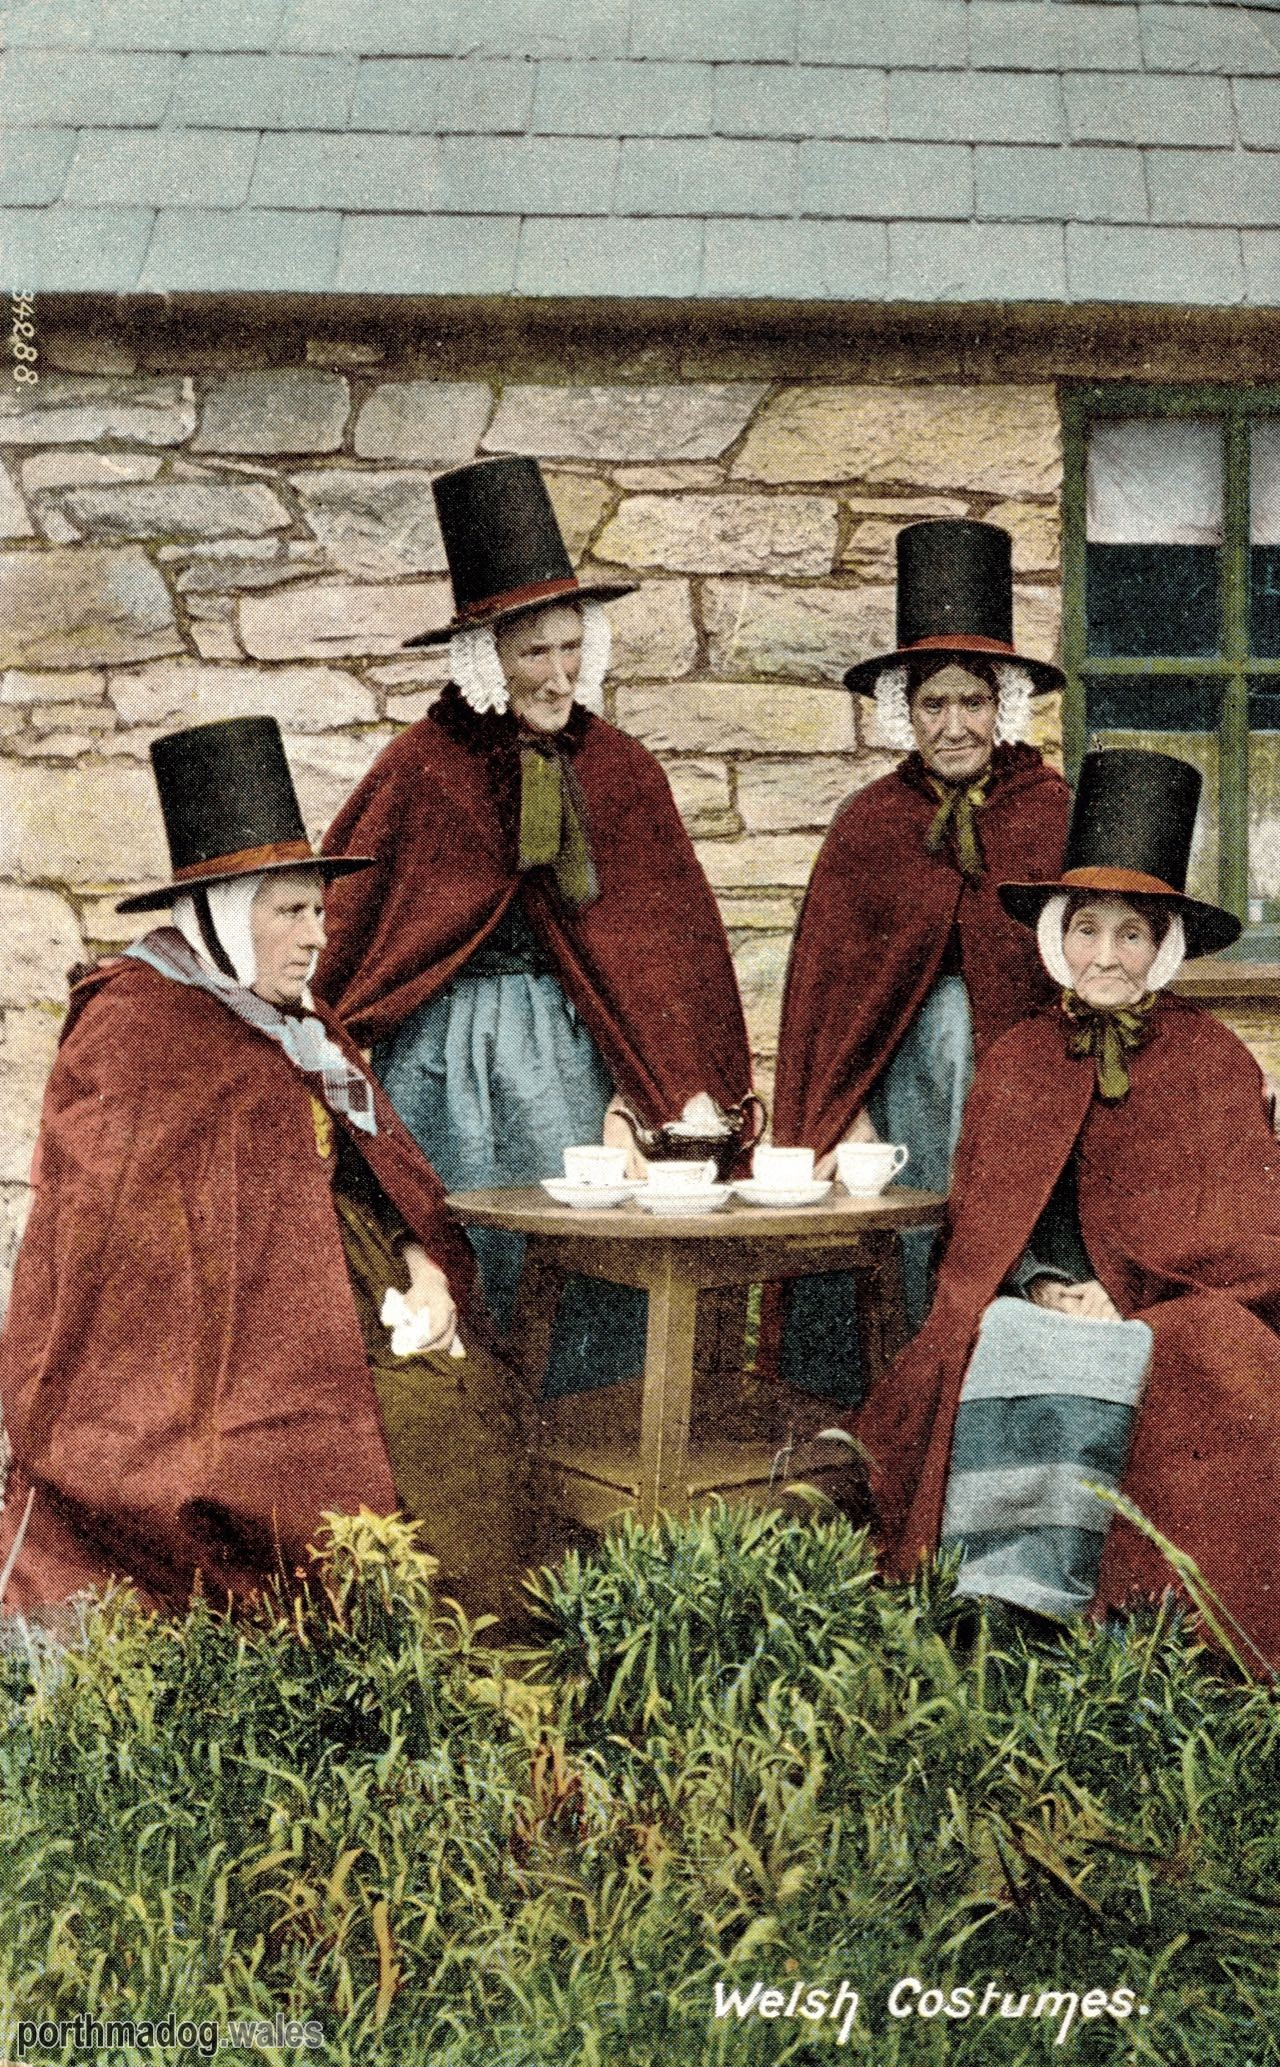 Postcard of Welsh Ladies in Their Traditional Welsh Costumes